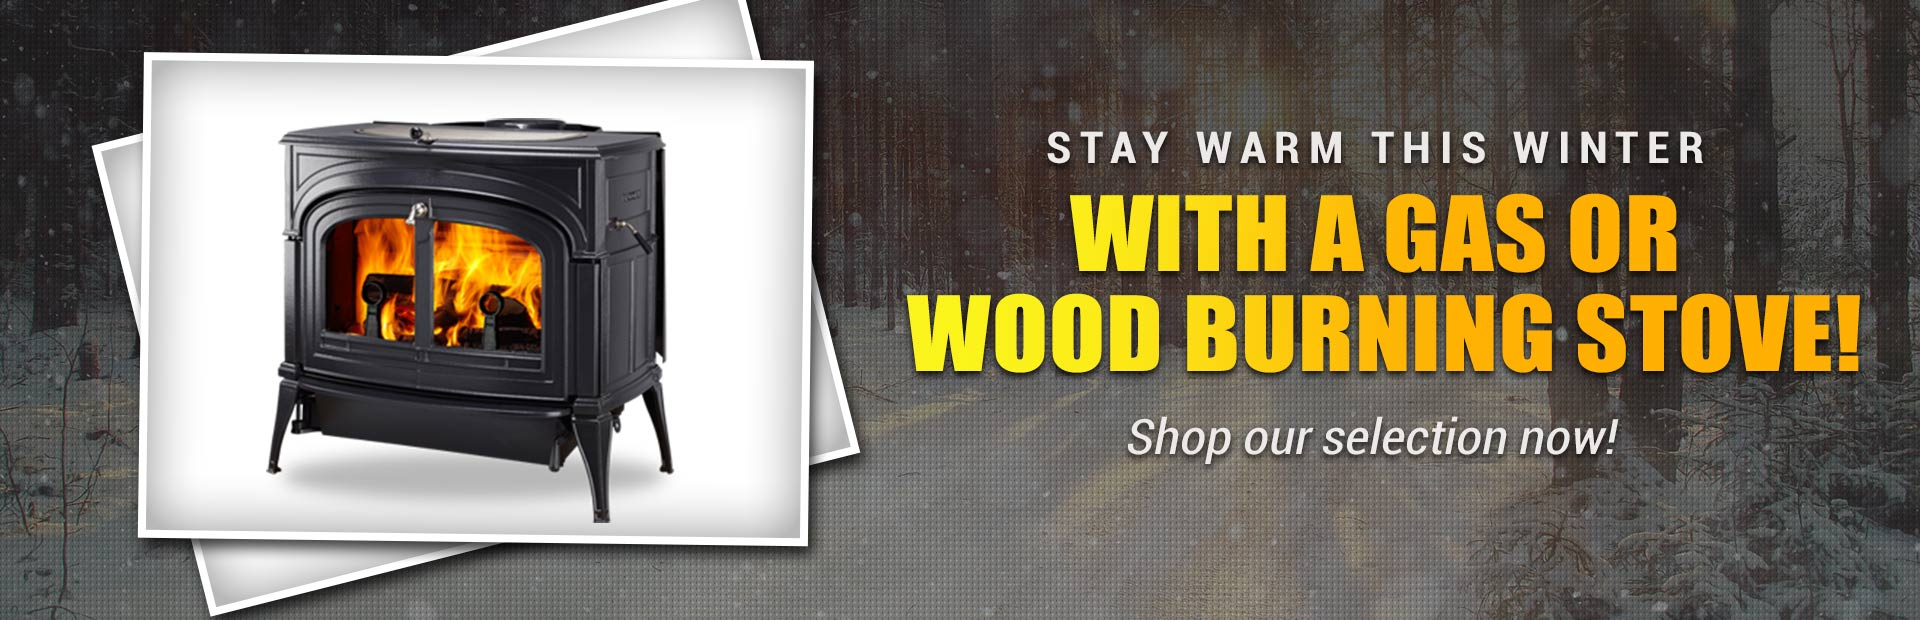 Stay warm this winter with a gas or wood burning stove! Shop our selection now!